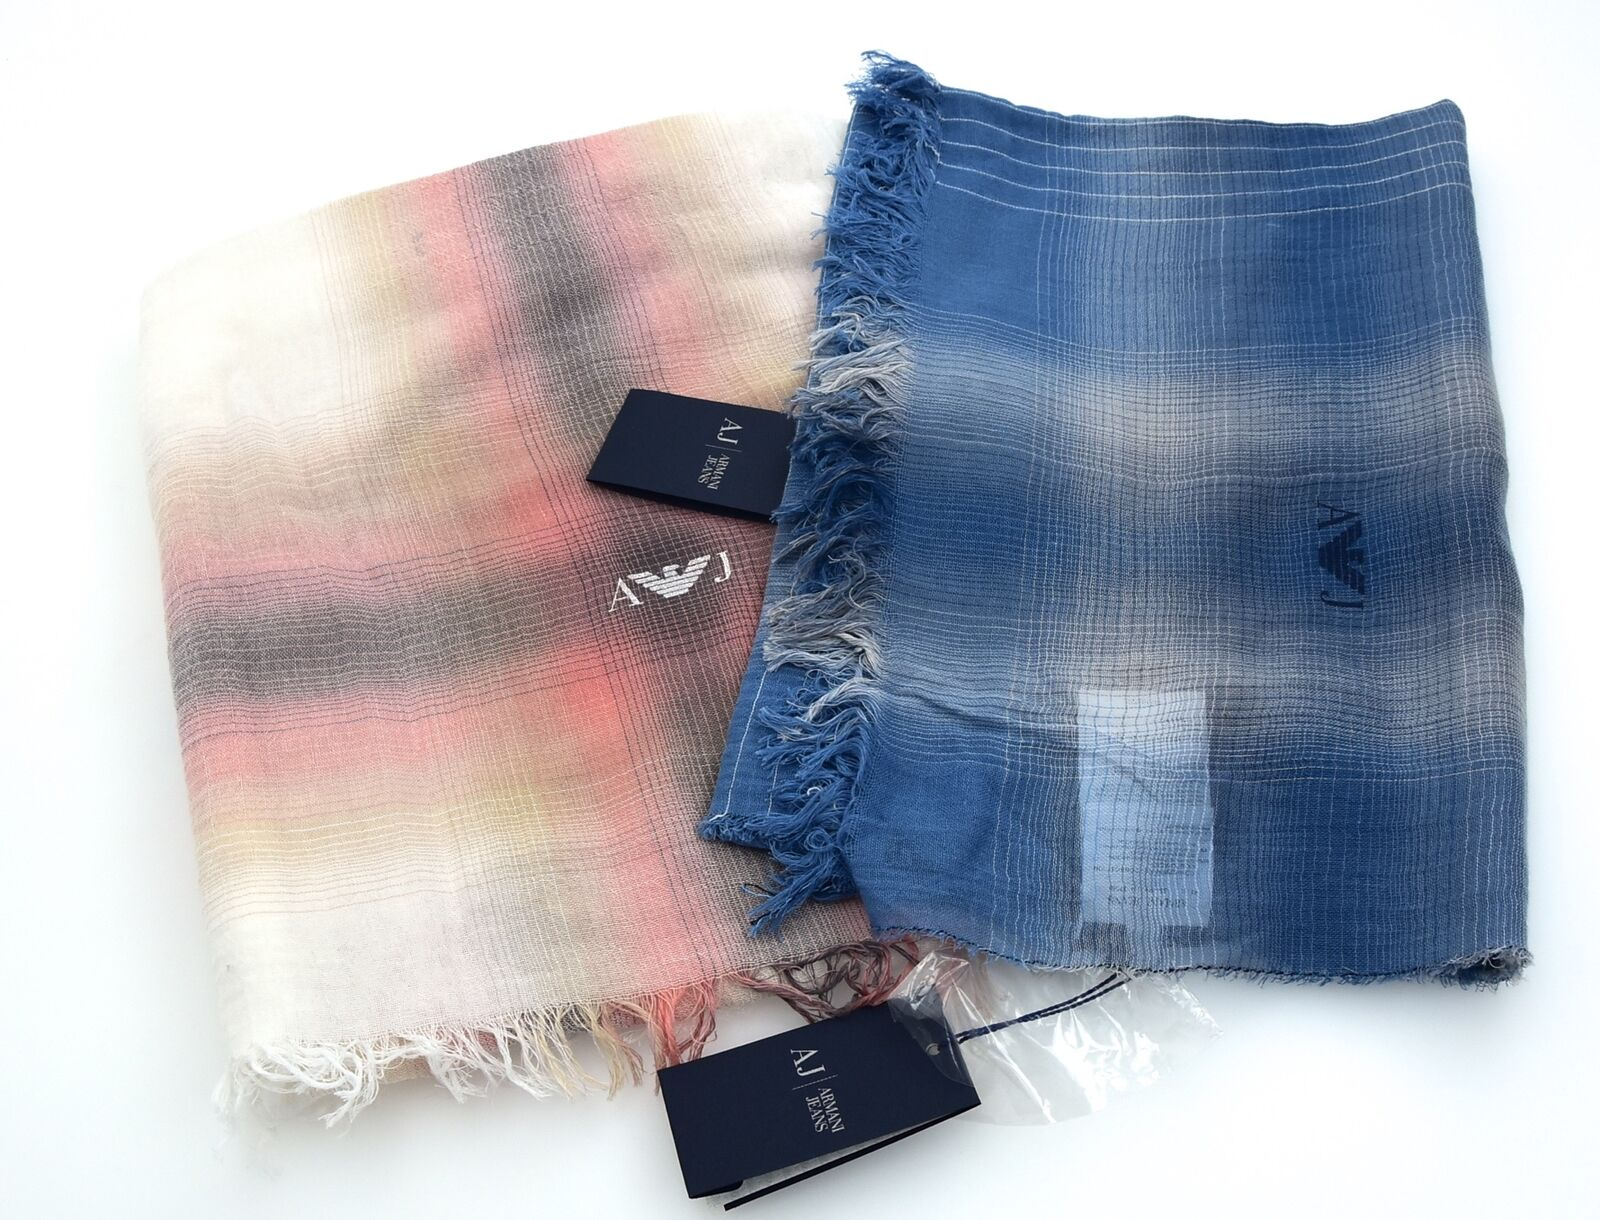 ARMANI JEANS WOMAN PASHMINA SCARF COTTON MADE IN ITALY CODE R5411